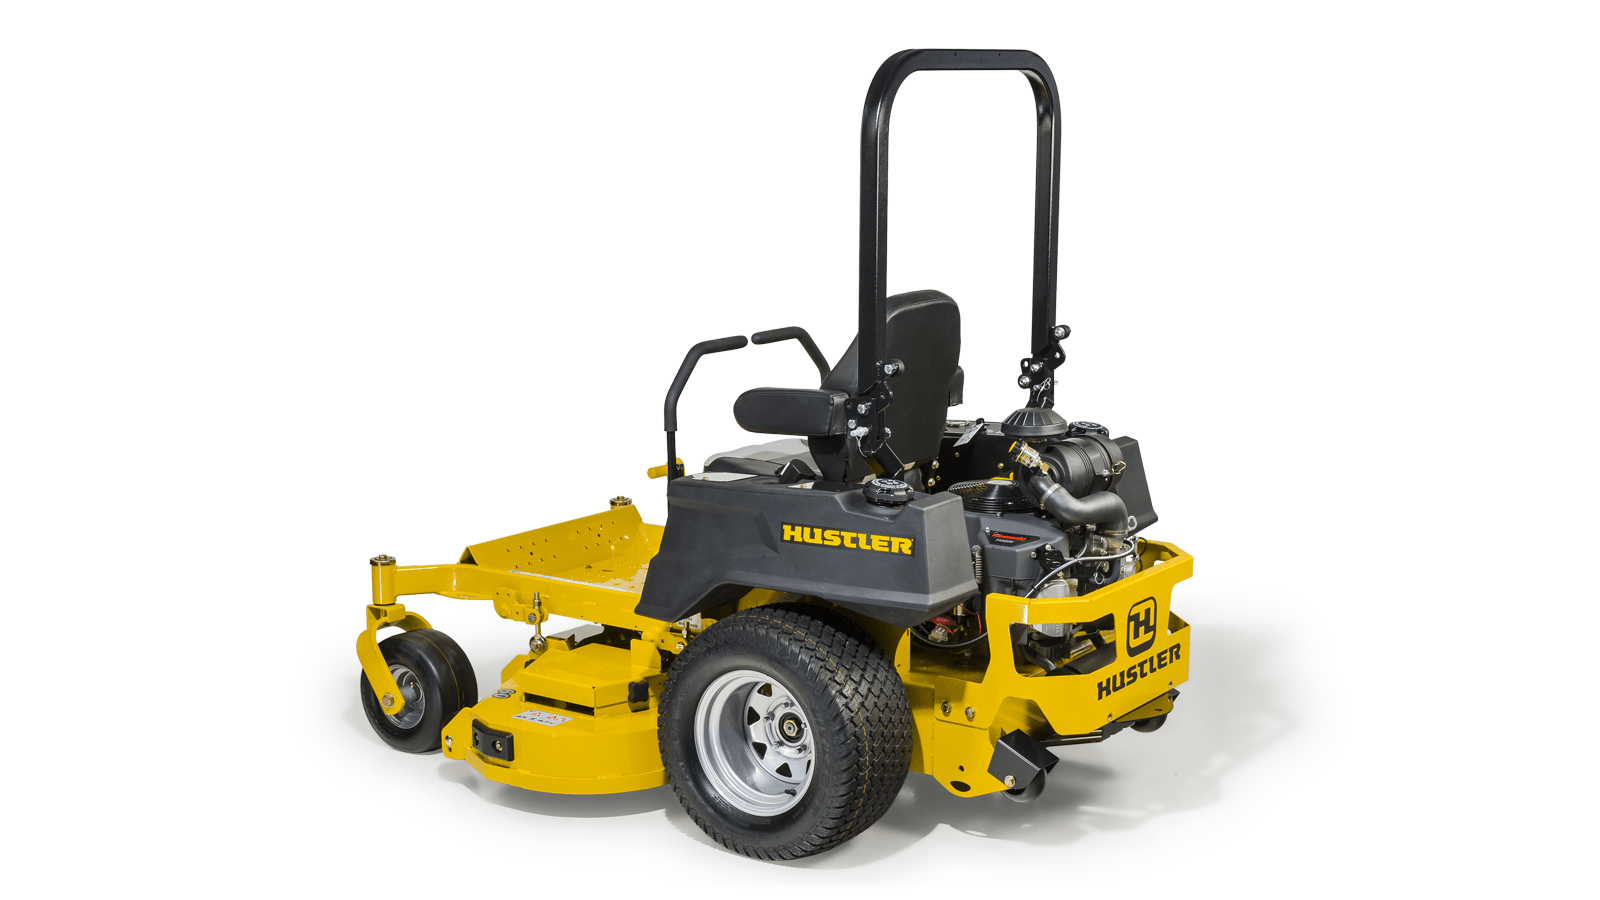 Hustler mower dealers